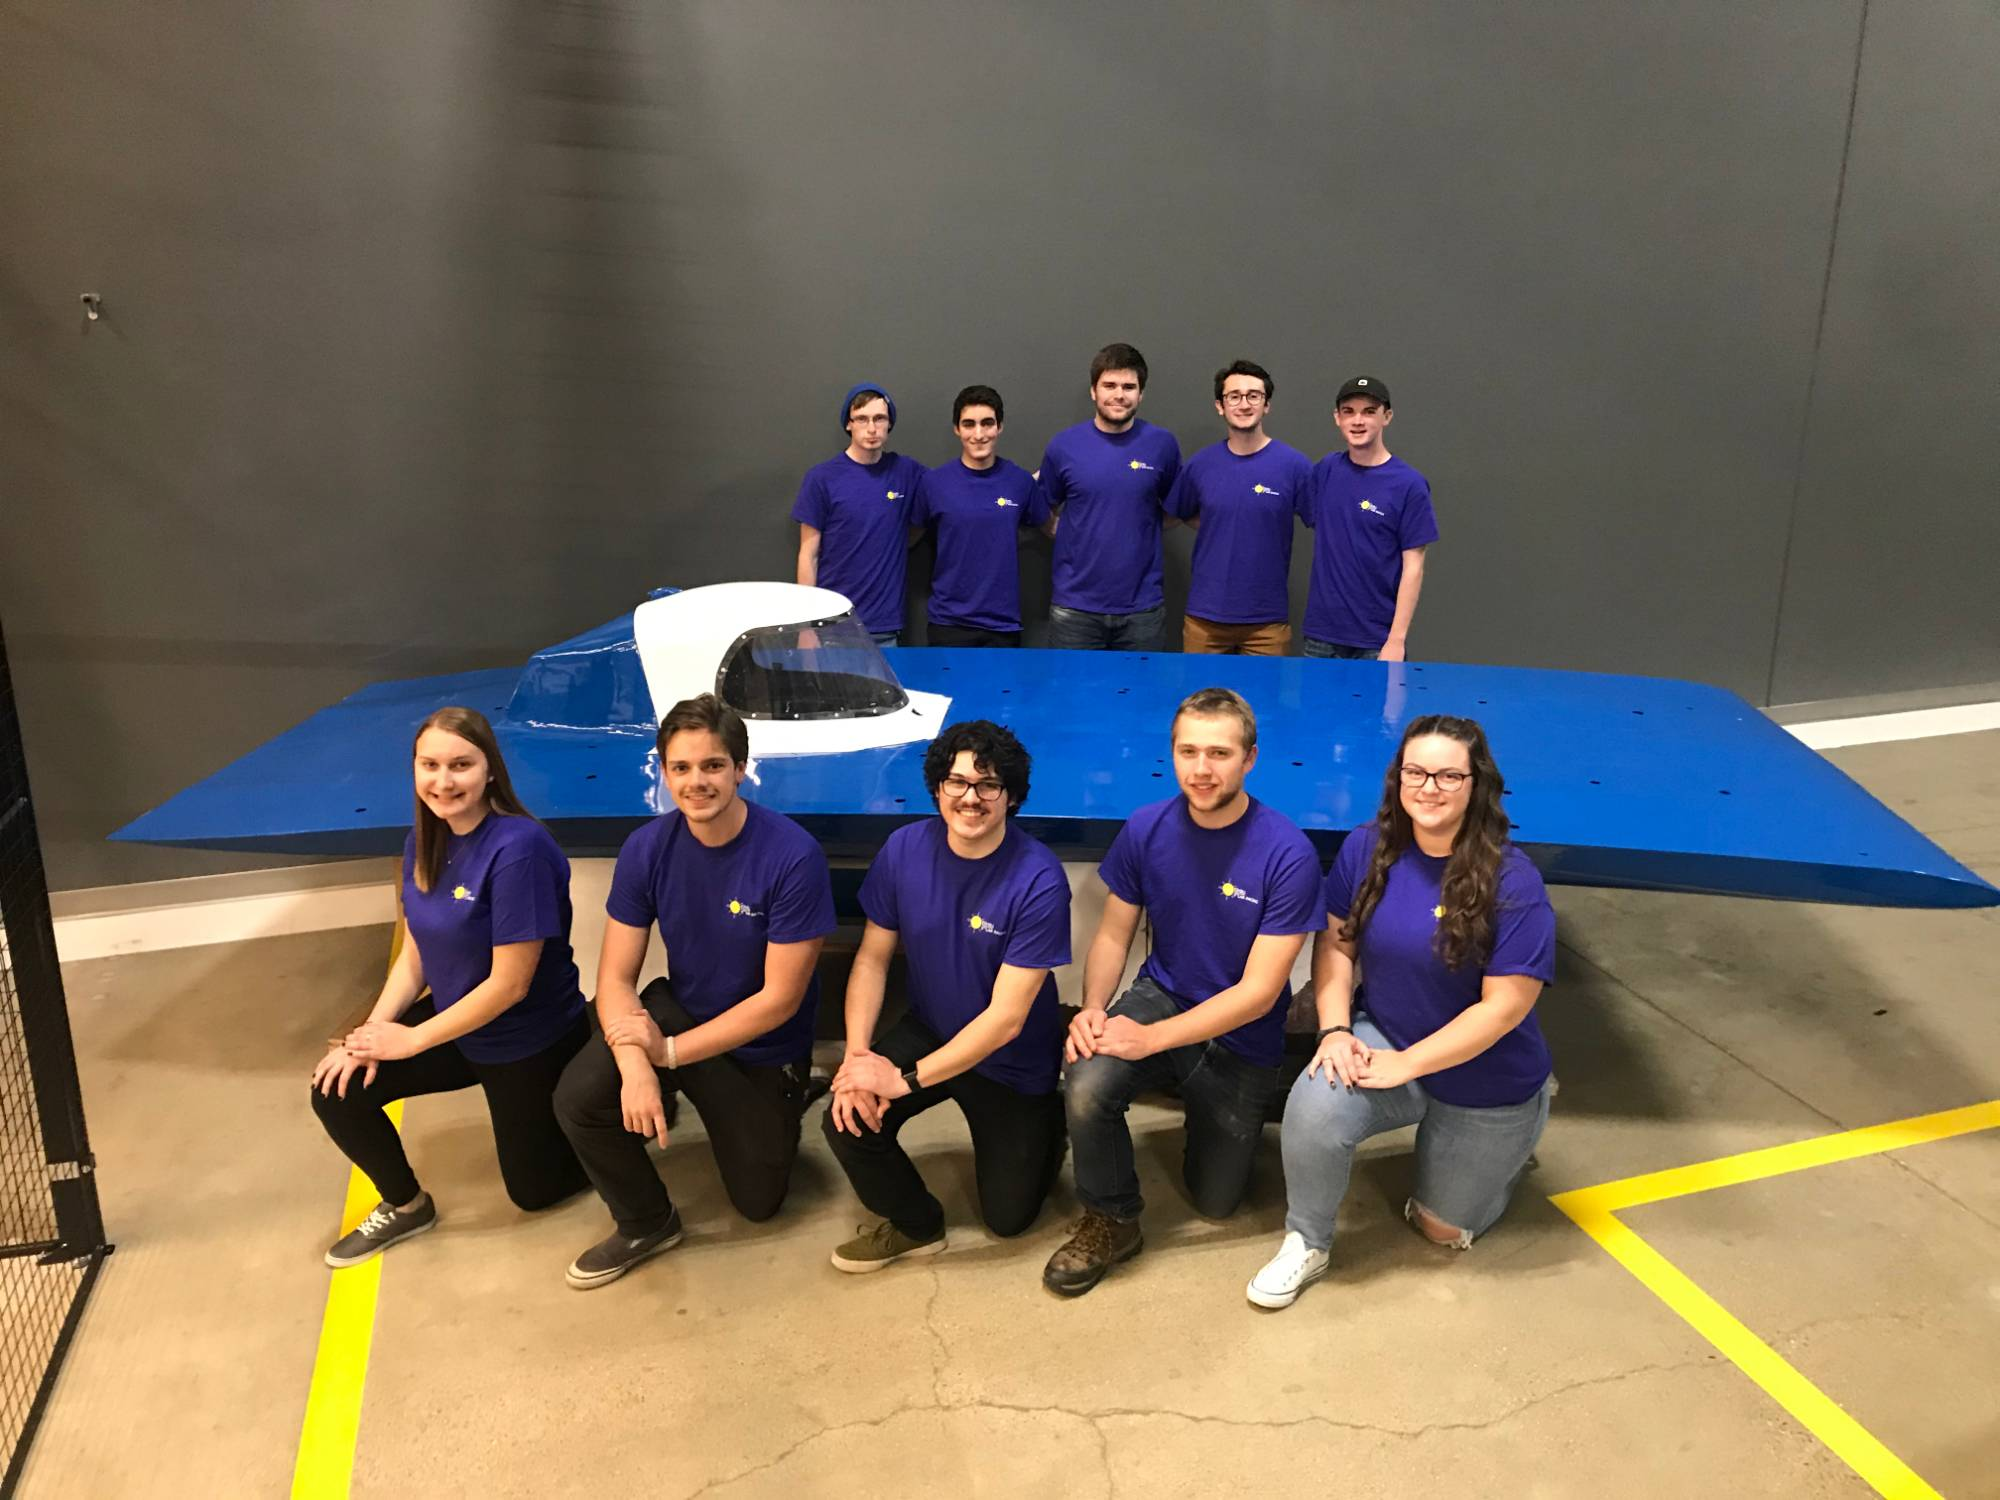 Students in front of the solar racing vehicle